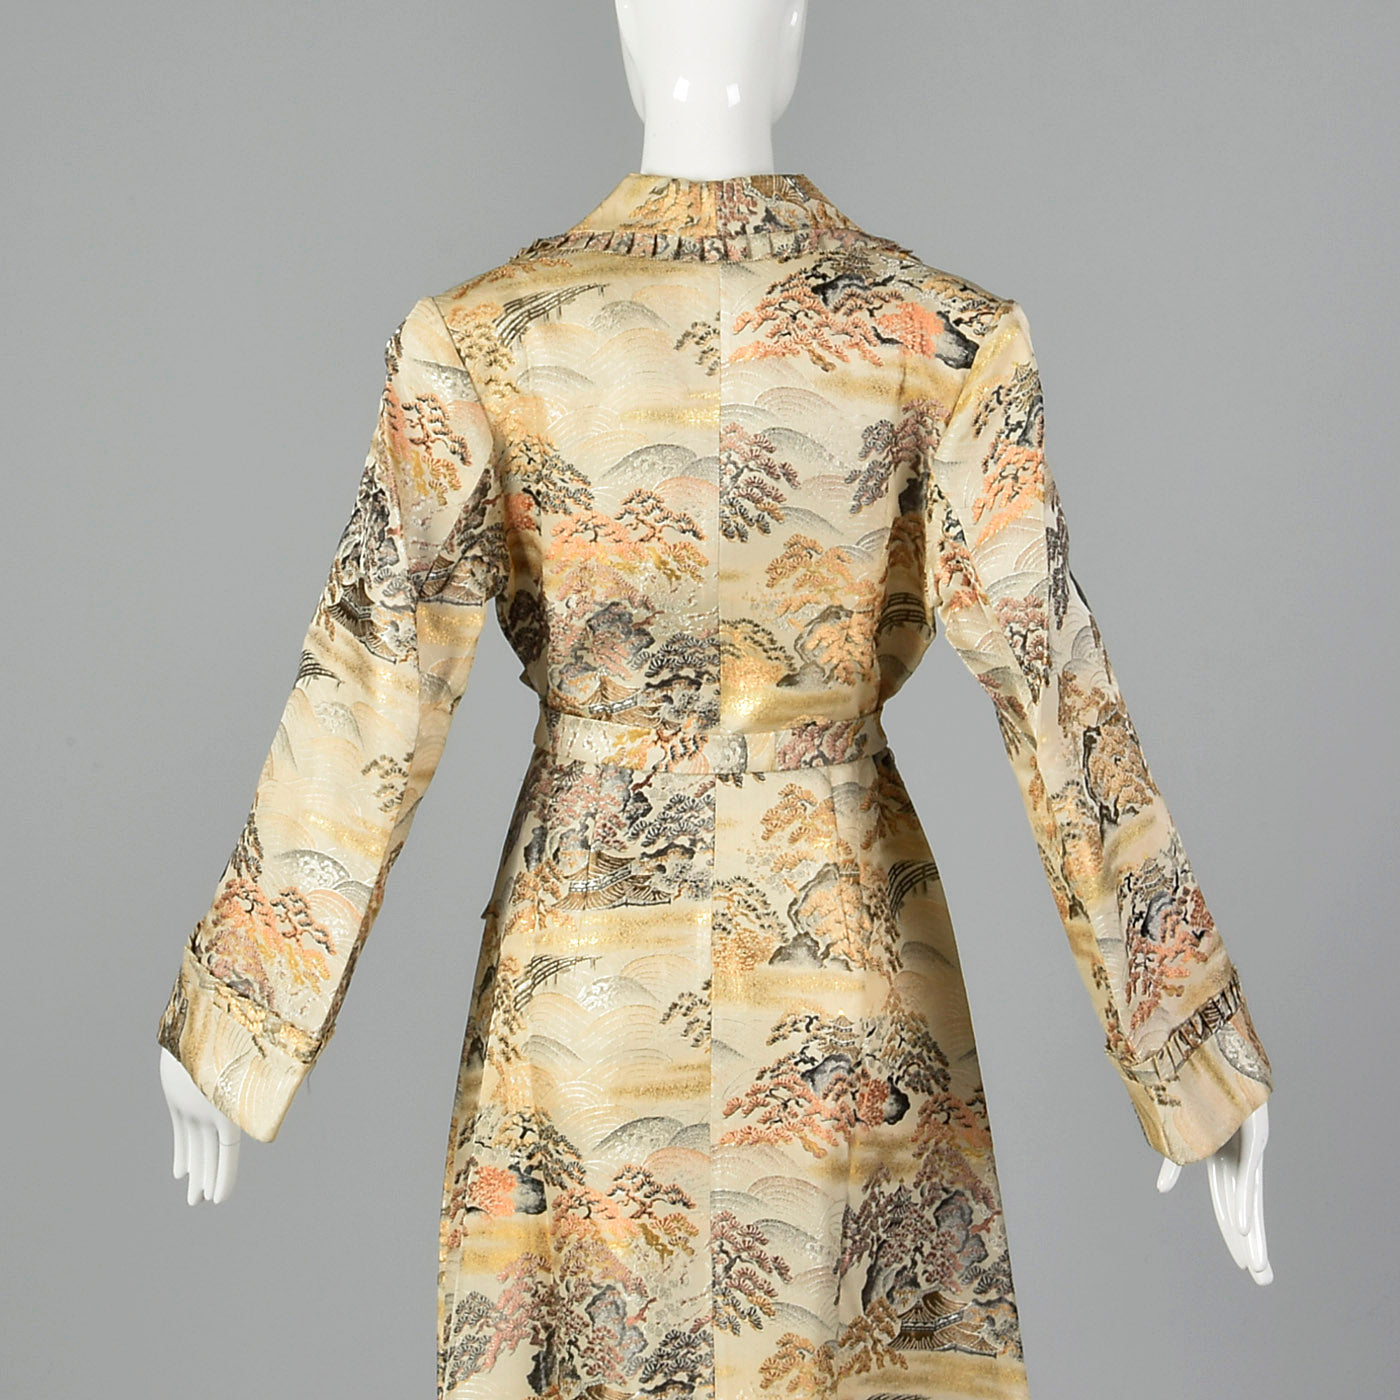 1950s Metallic Brocade Robe in Landscape Motif